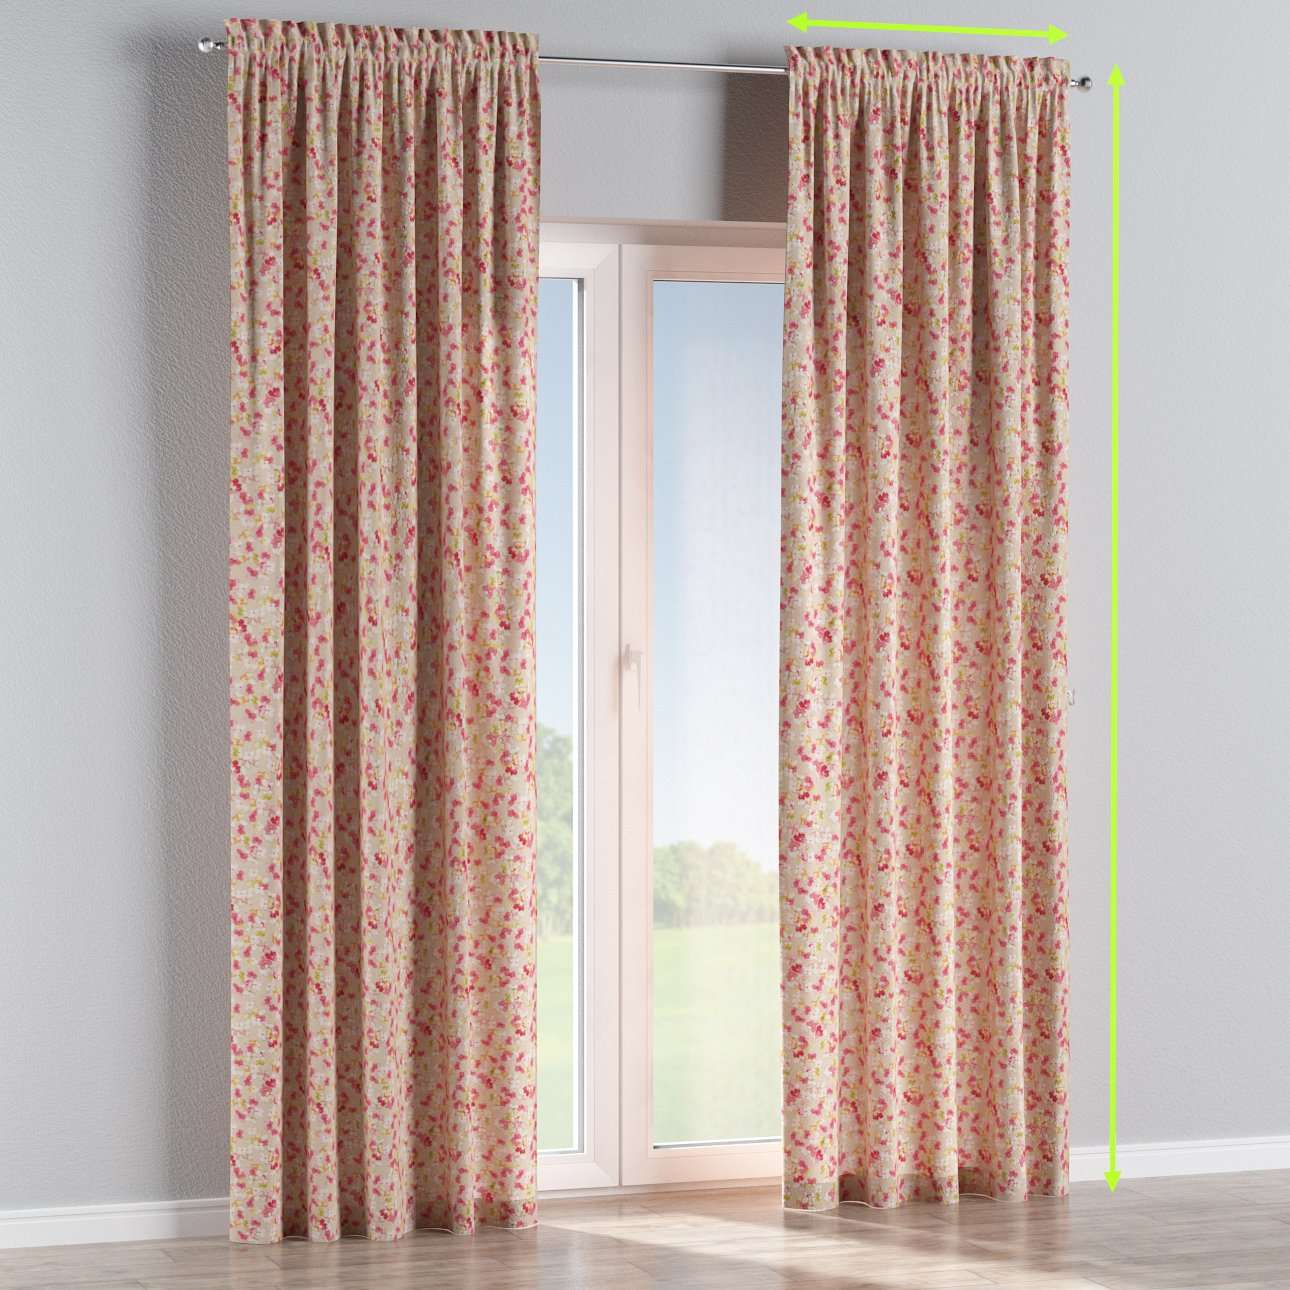 Slot and frill lined curtains in collection Londres, fabric: 140-47